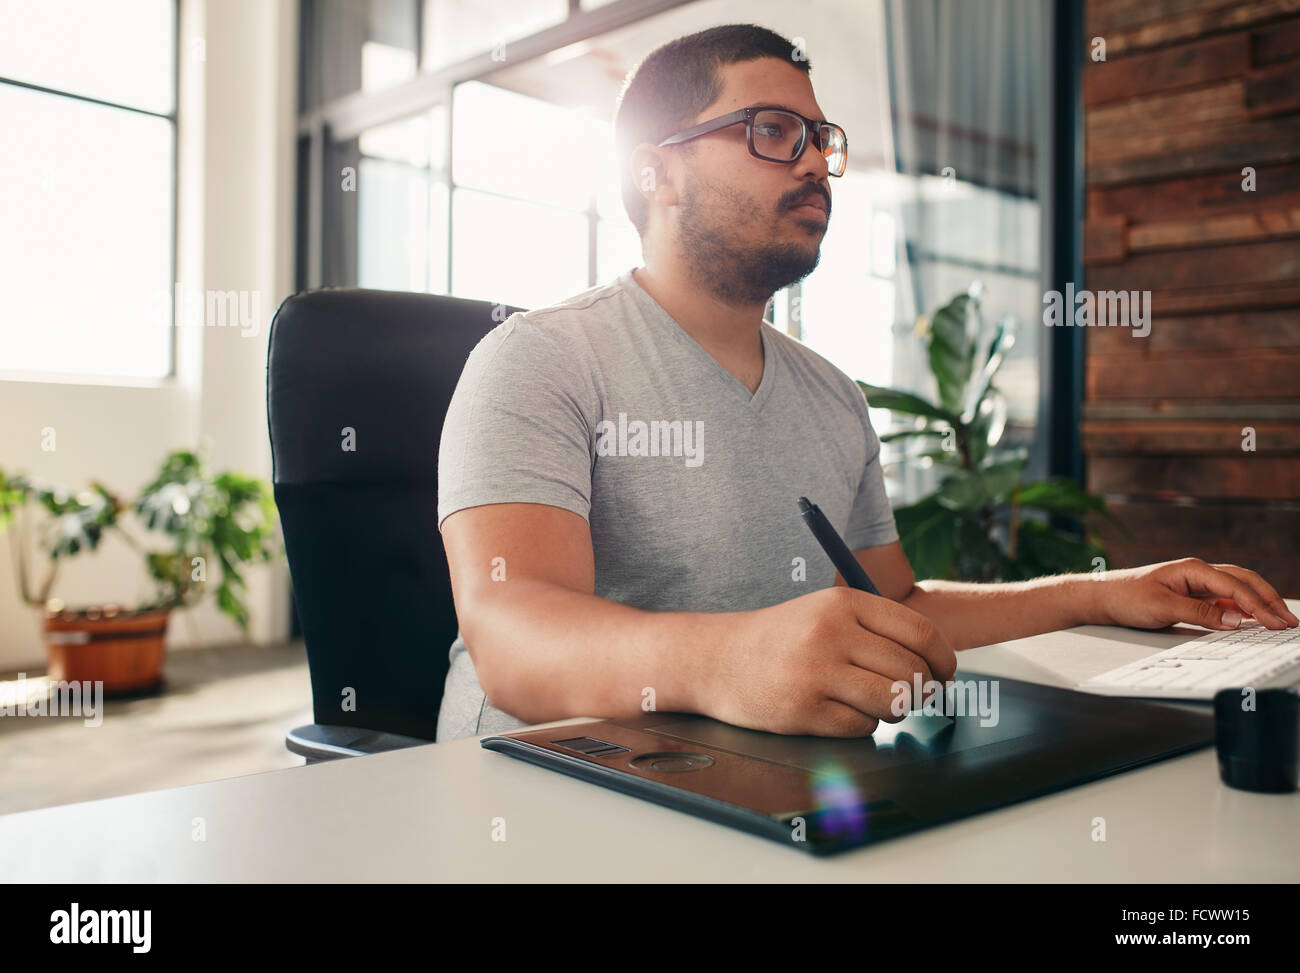 Portrait of young male photo editor at work in his office. Male graphic designer working at his desk using digital - Stock Image